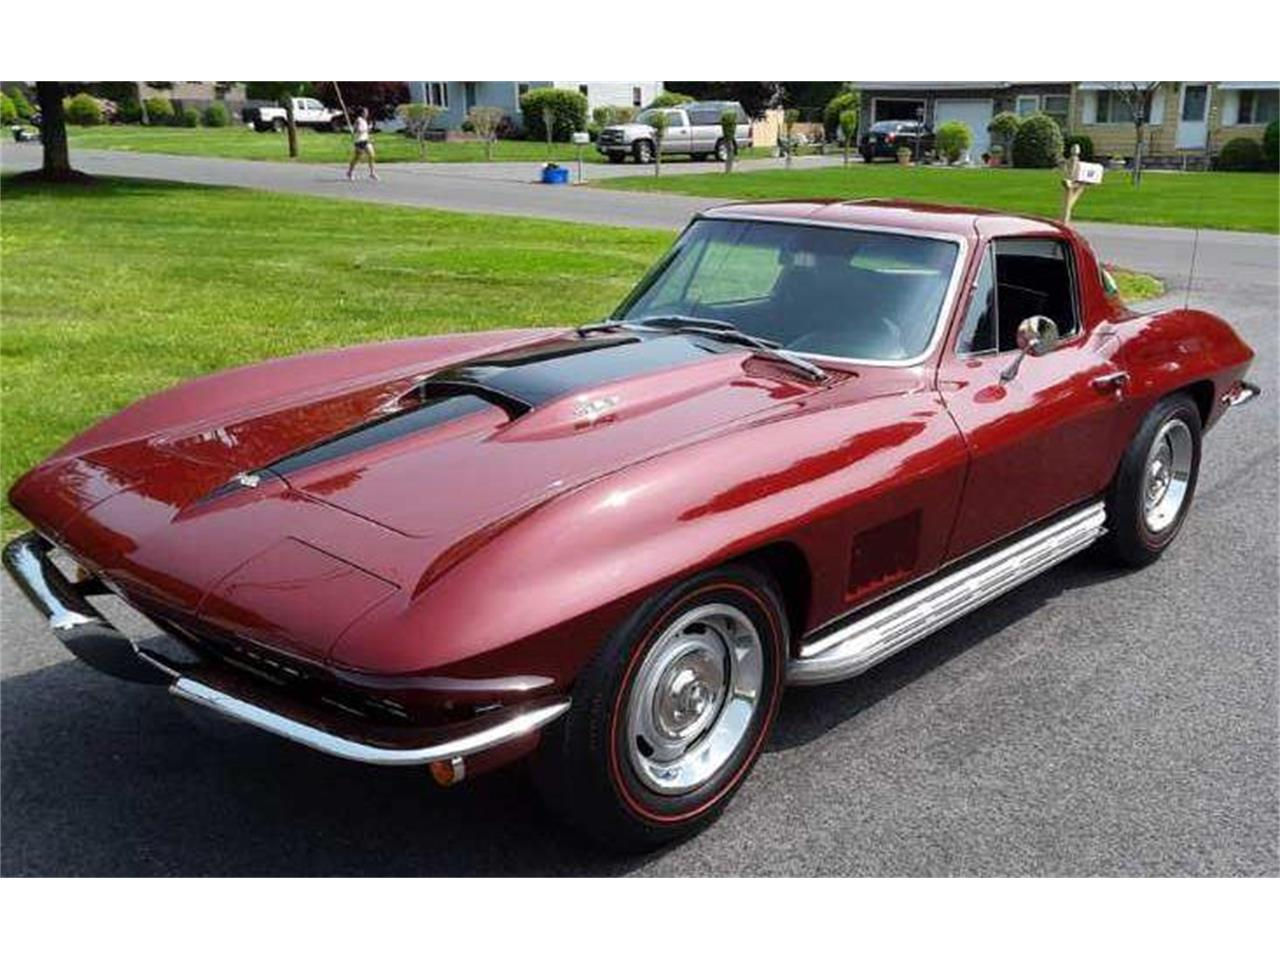 1967 Chevrolet Corvette Stingray (CC-1329919) for sale in East Longmeadow, Massachusetts